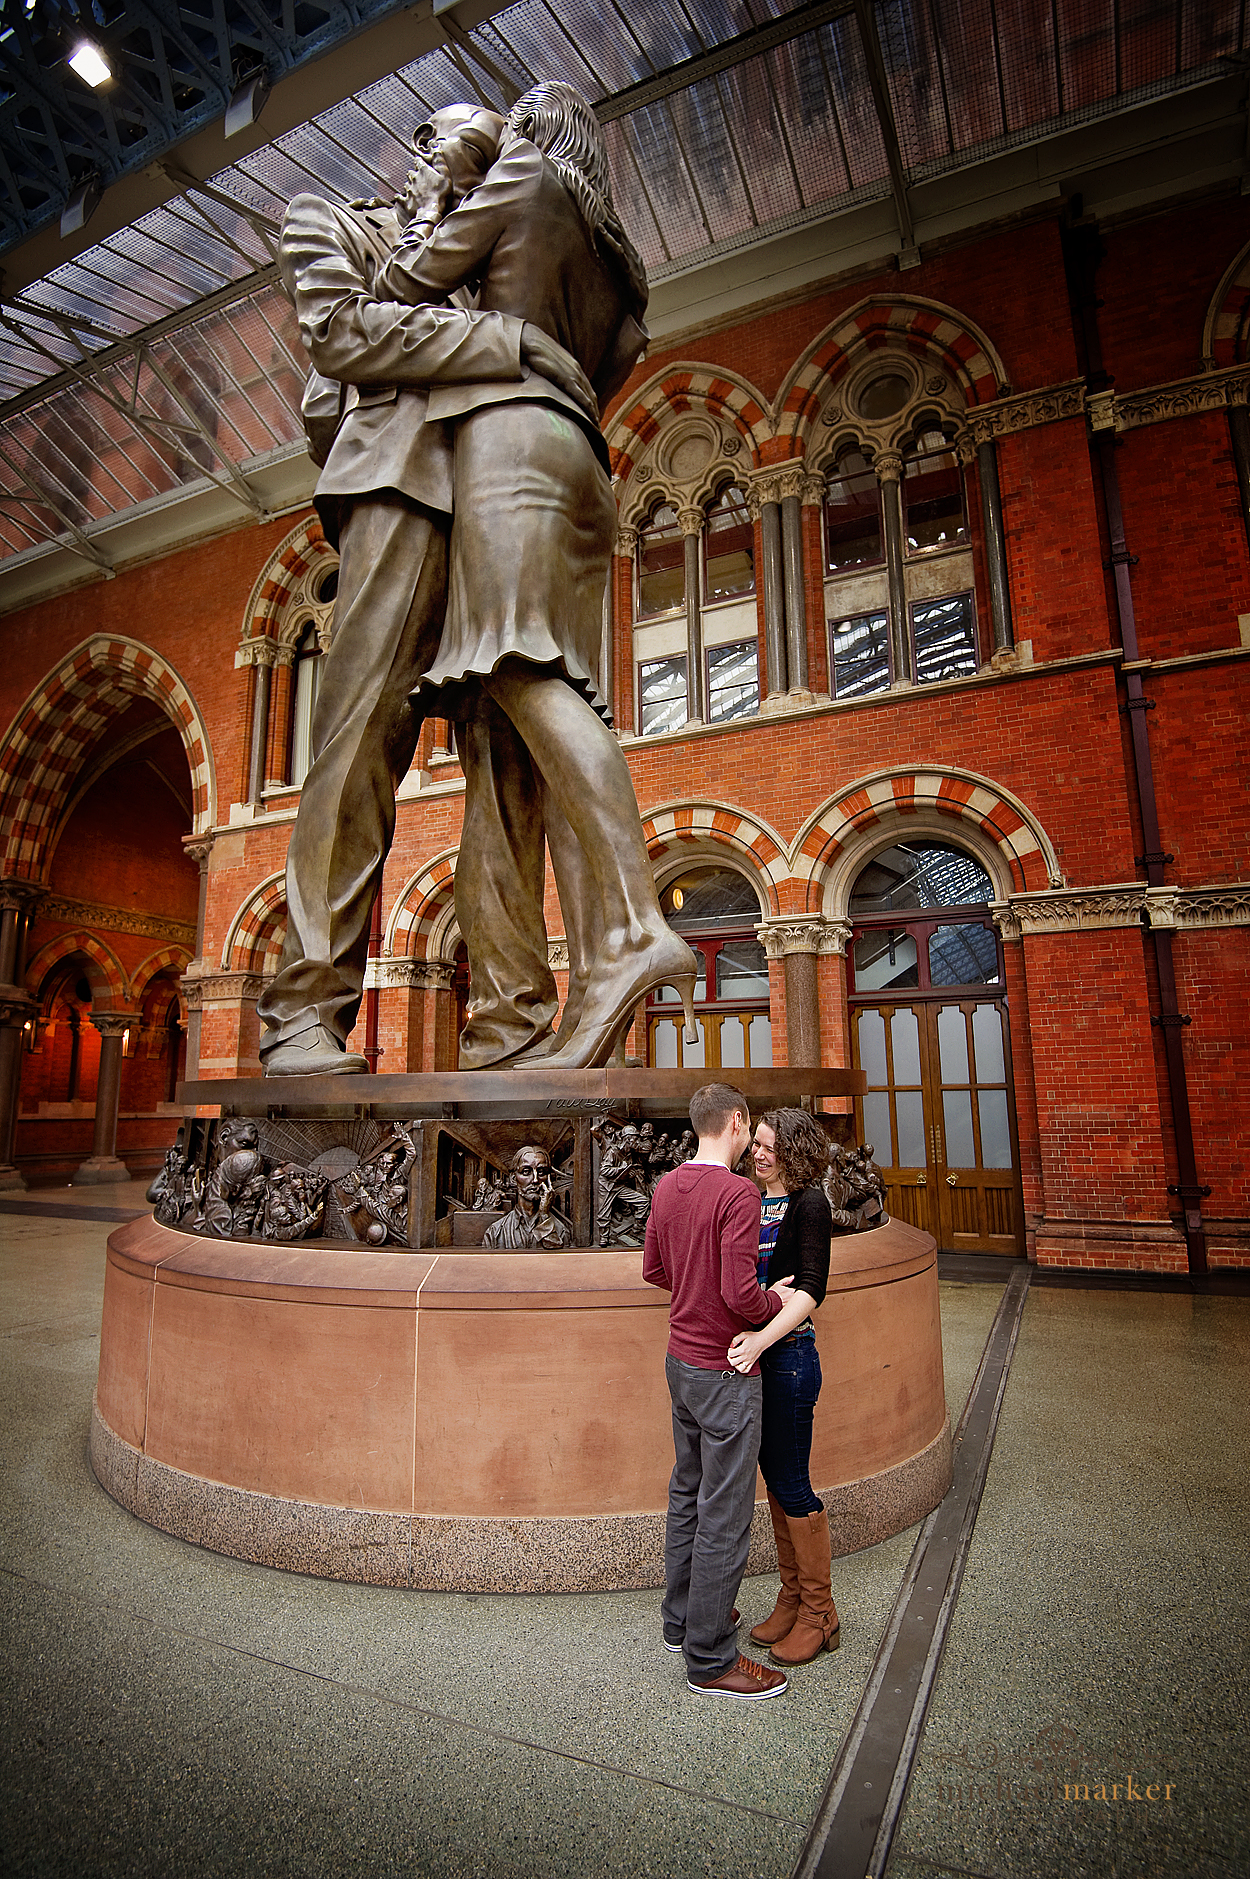 Kissing couple at St Pancras in London